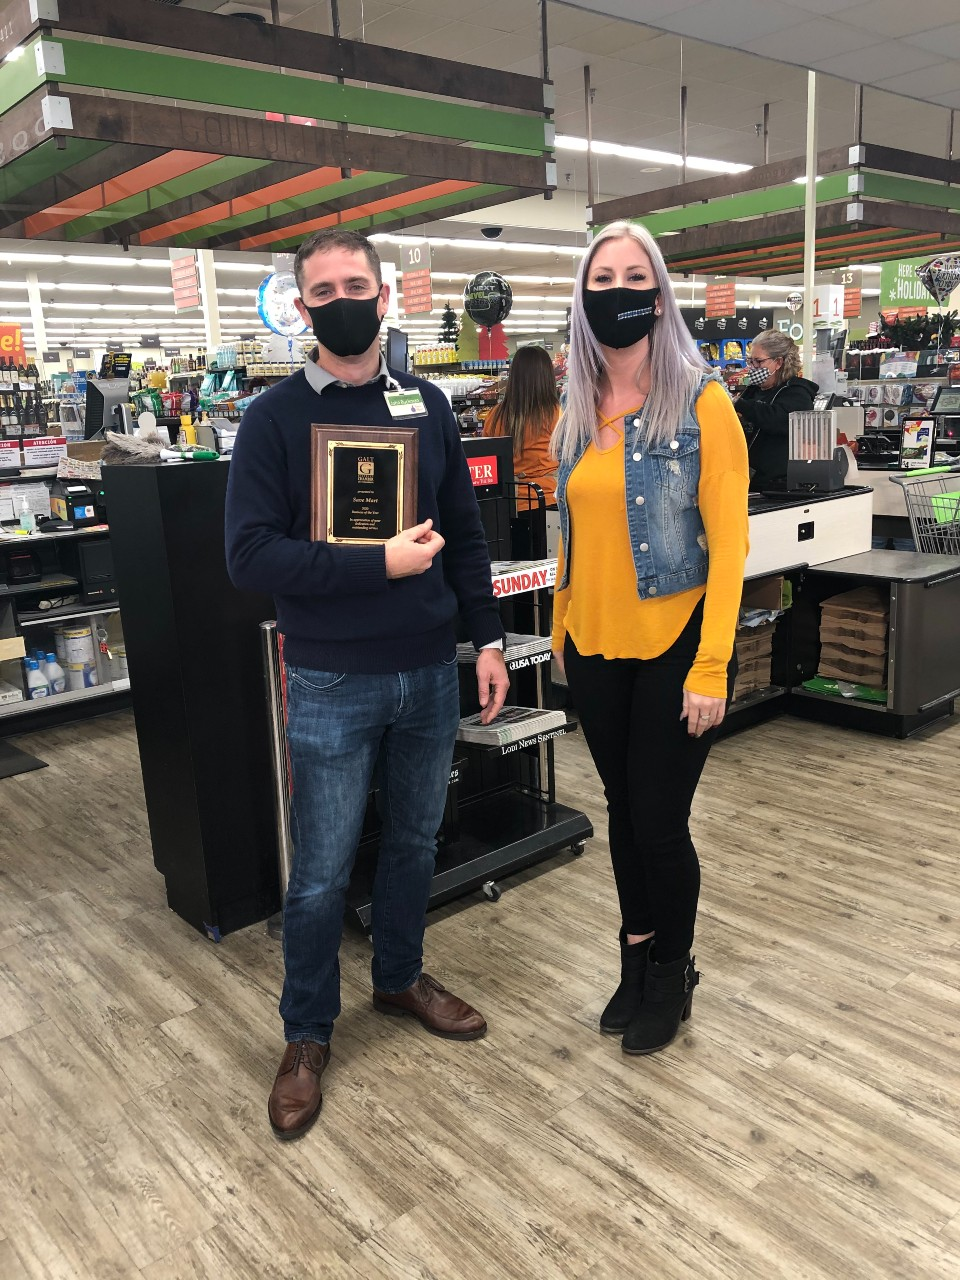 Save Mart Awarded 2020's Business of the Year - Dec 15 2020